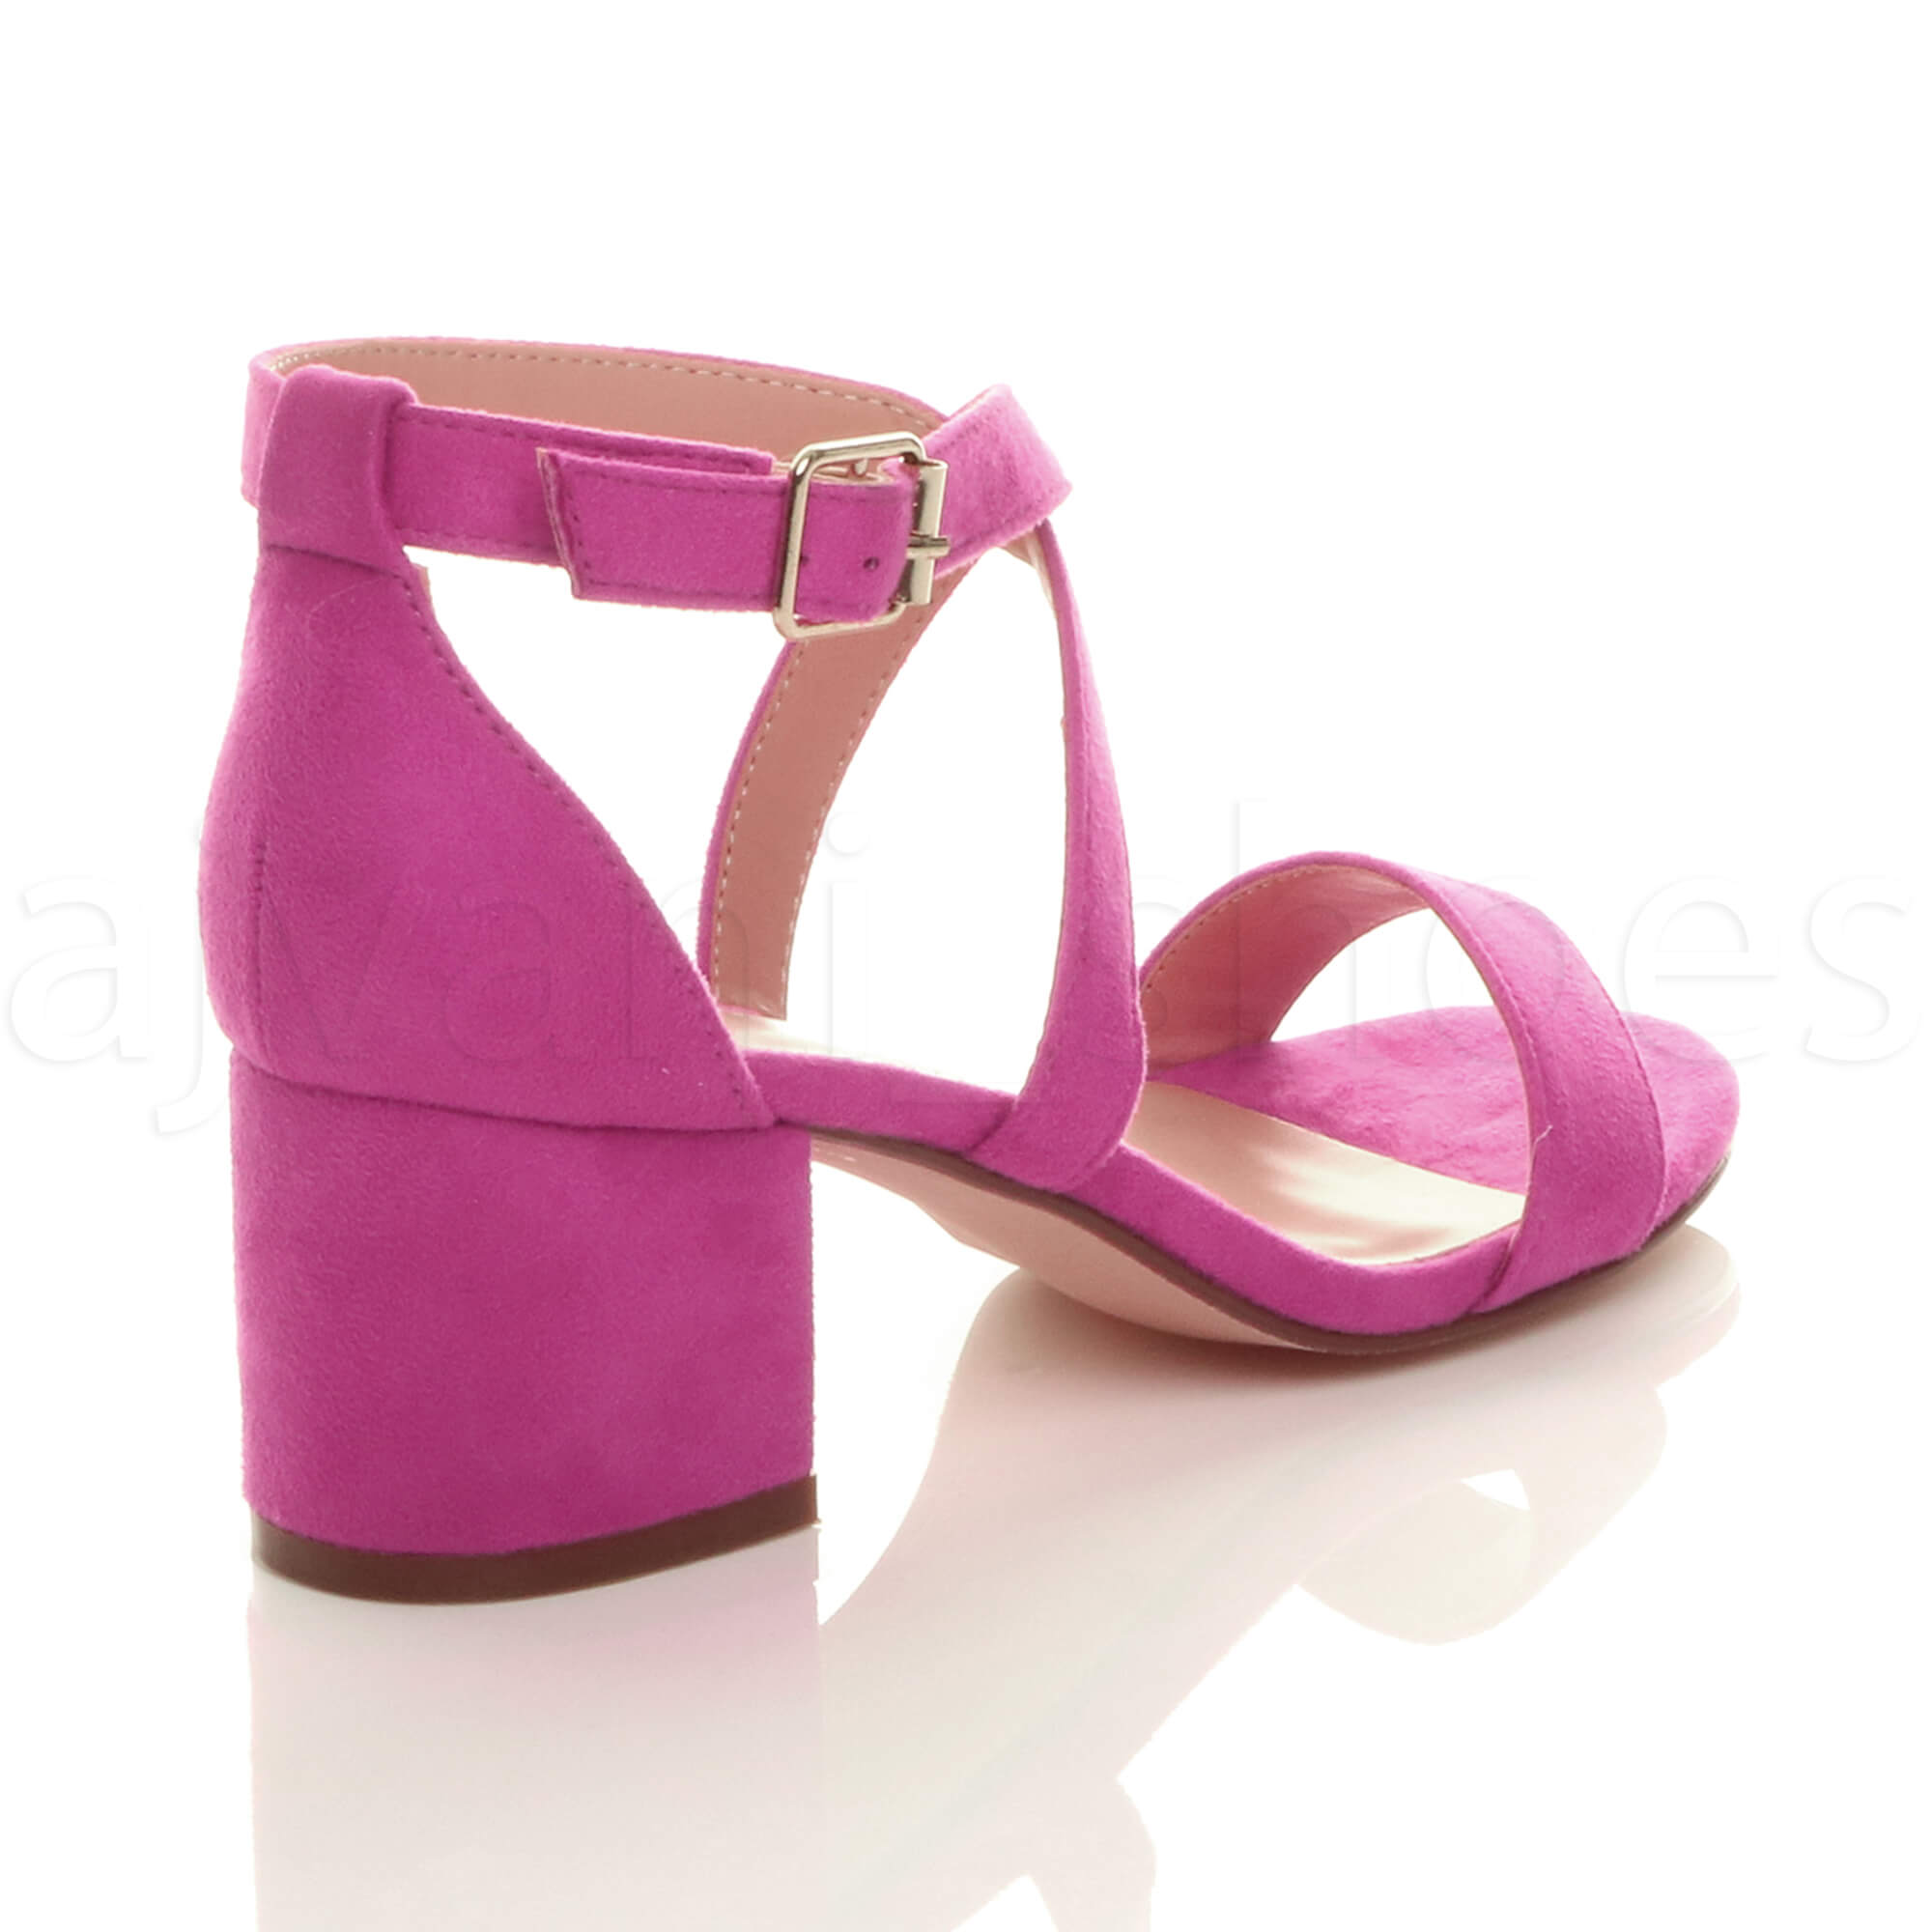 WOMENS-LADIES-MID-LOW-BLOCK-HEEL-CROSS-STRAPS-PARTY-STRAPPY-SANDALS-SHOES-SIZE thumbnail 24